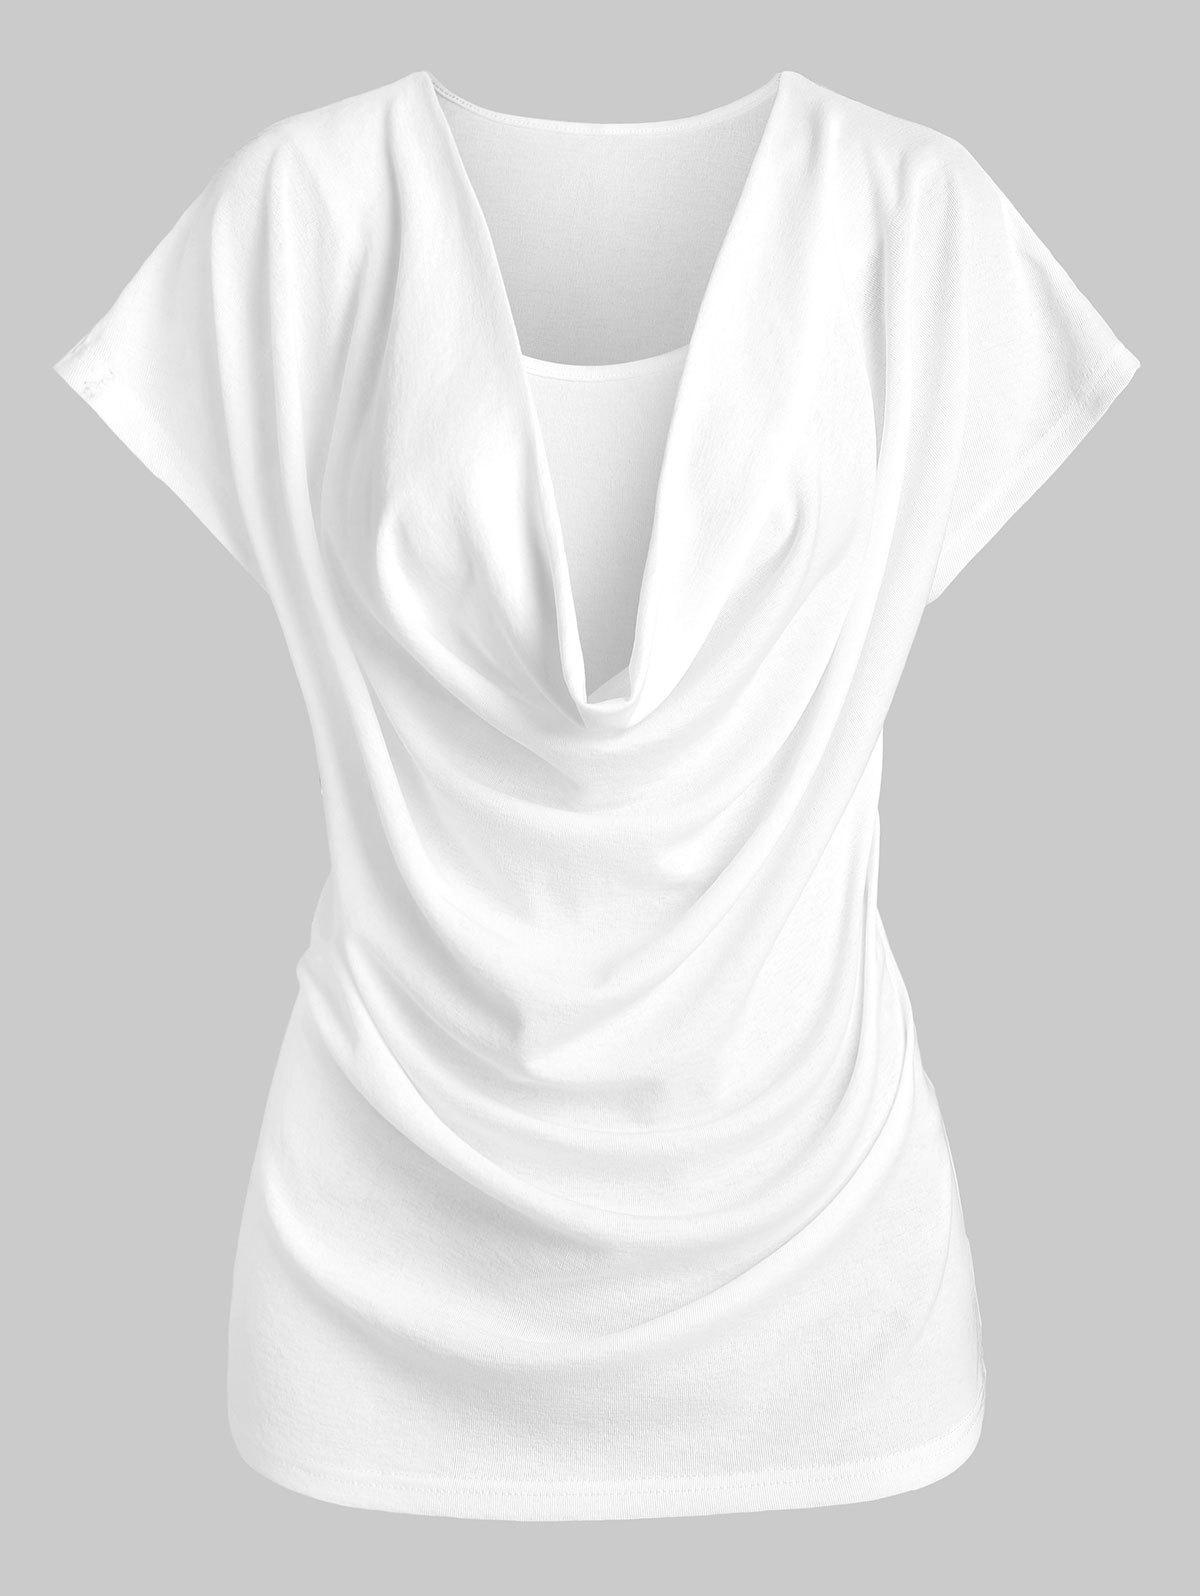 Outfit Cowl Neck Plain T-shirt and Cami Top